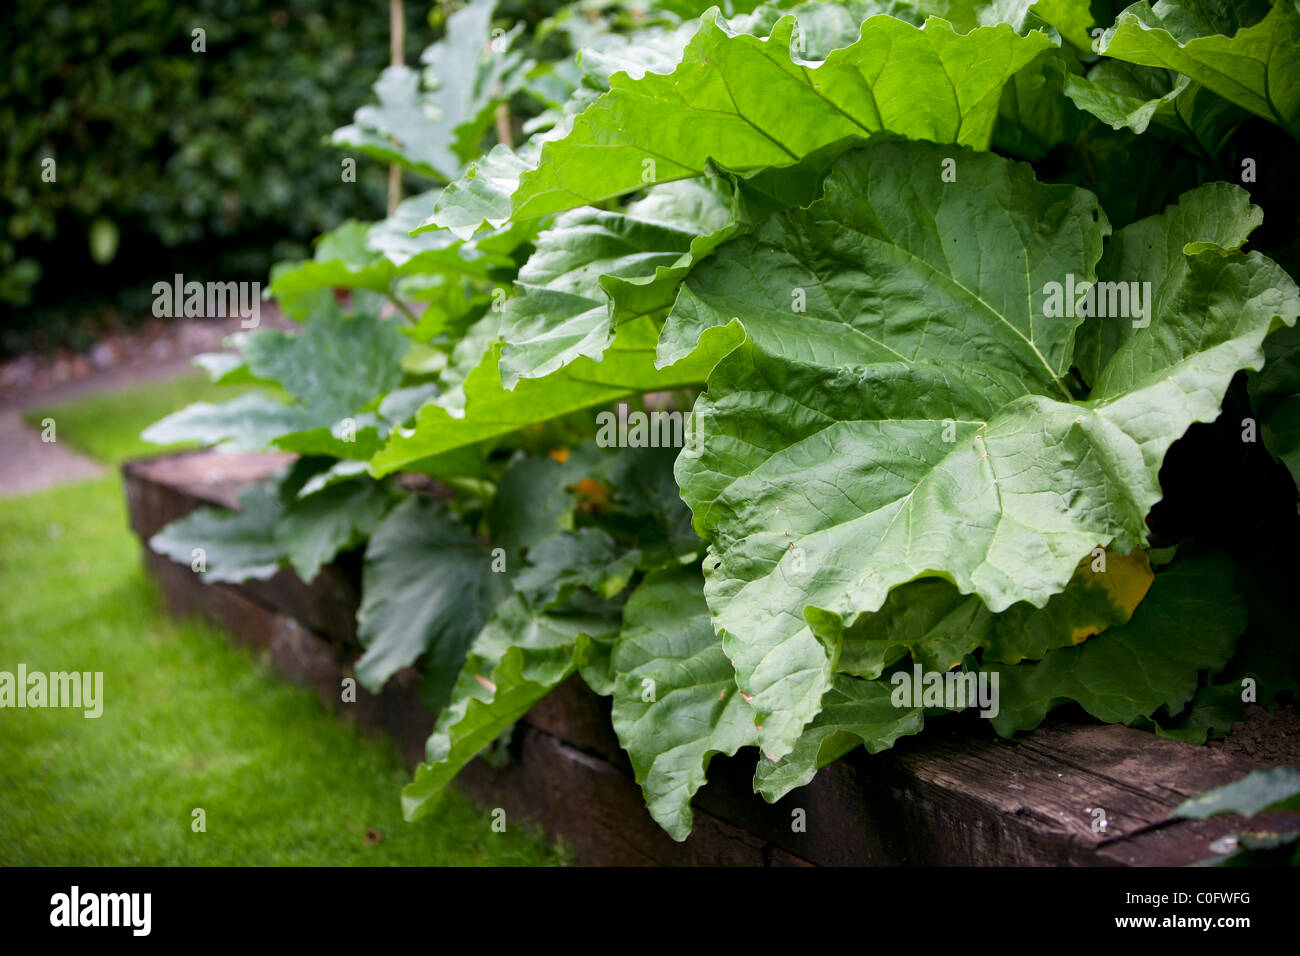 Peas growing in the summer time in an allotment or garden in Britian - Stock Image